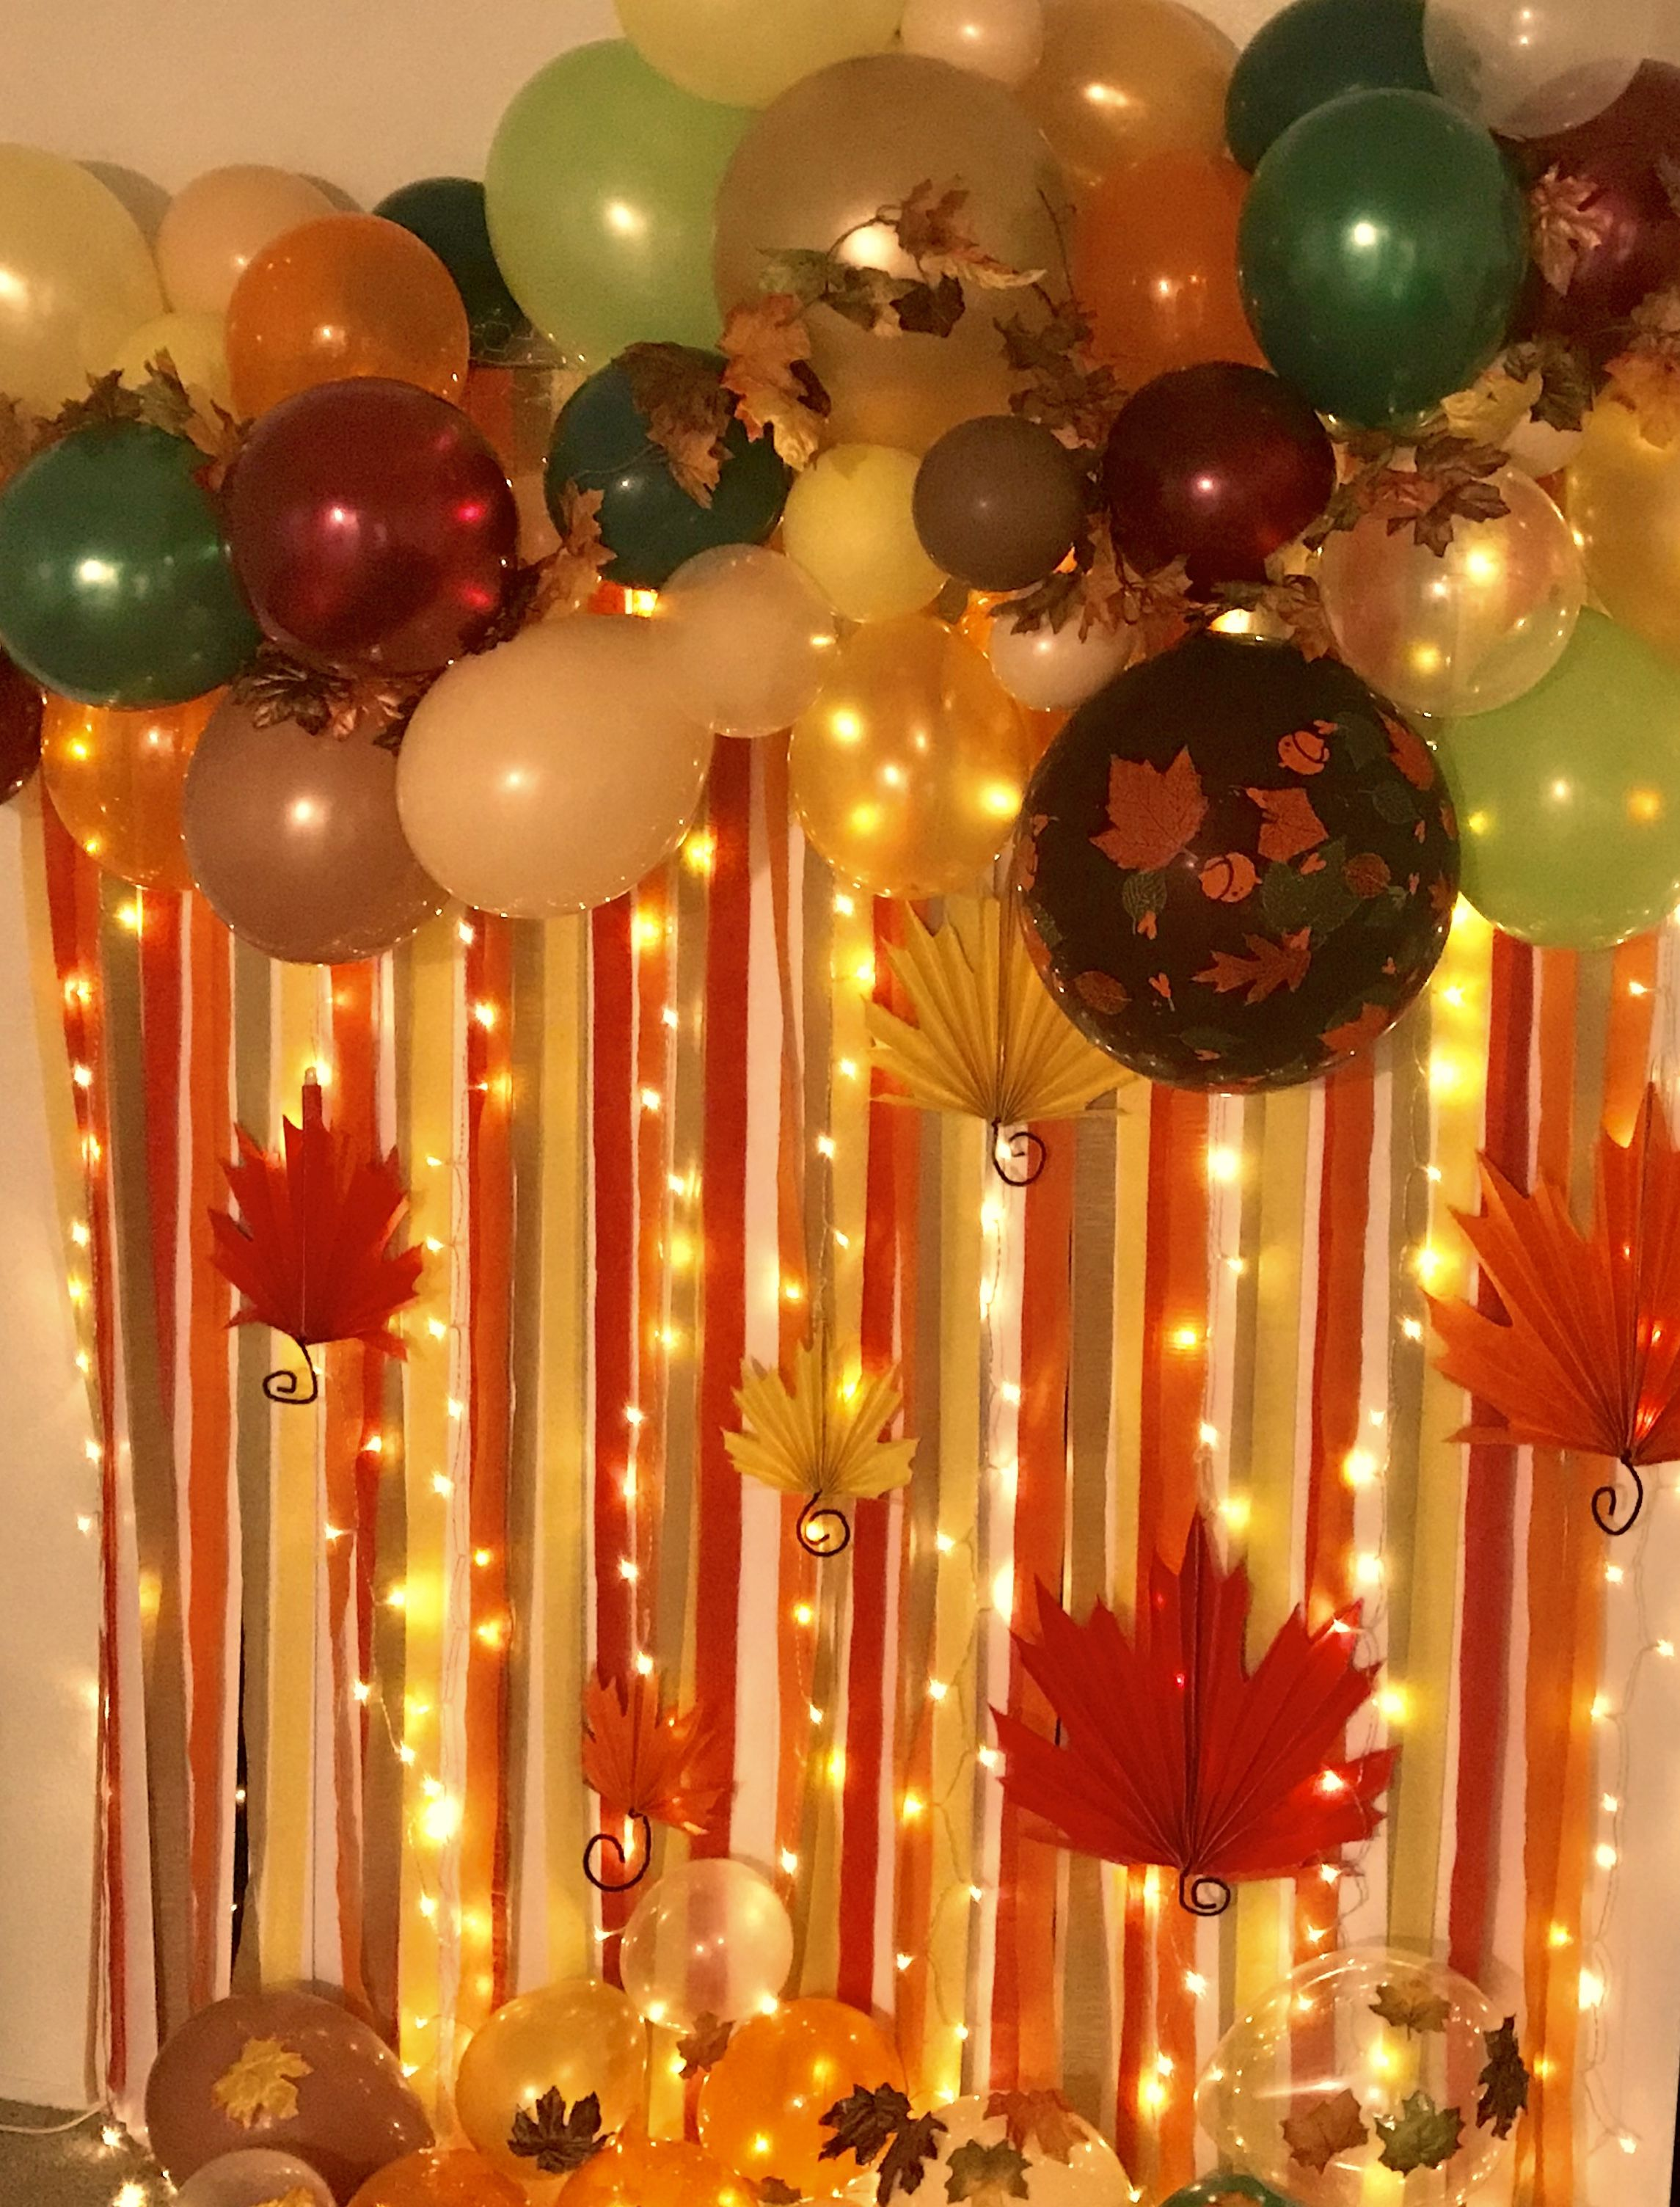 Thanksgiving Backdrop! Autumn Backdrop Ideas! Fall Decorating Ideas! & Fall Backdrop! Thanksgiving Backdrop! Autumn Backdrop Ideas! Fall ...